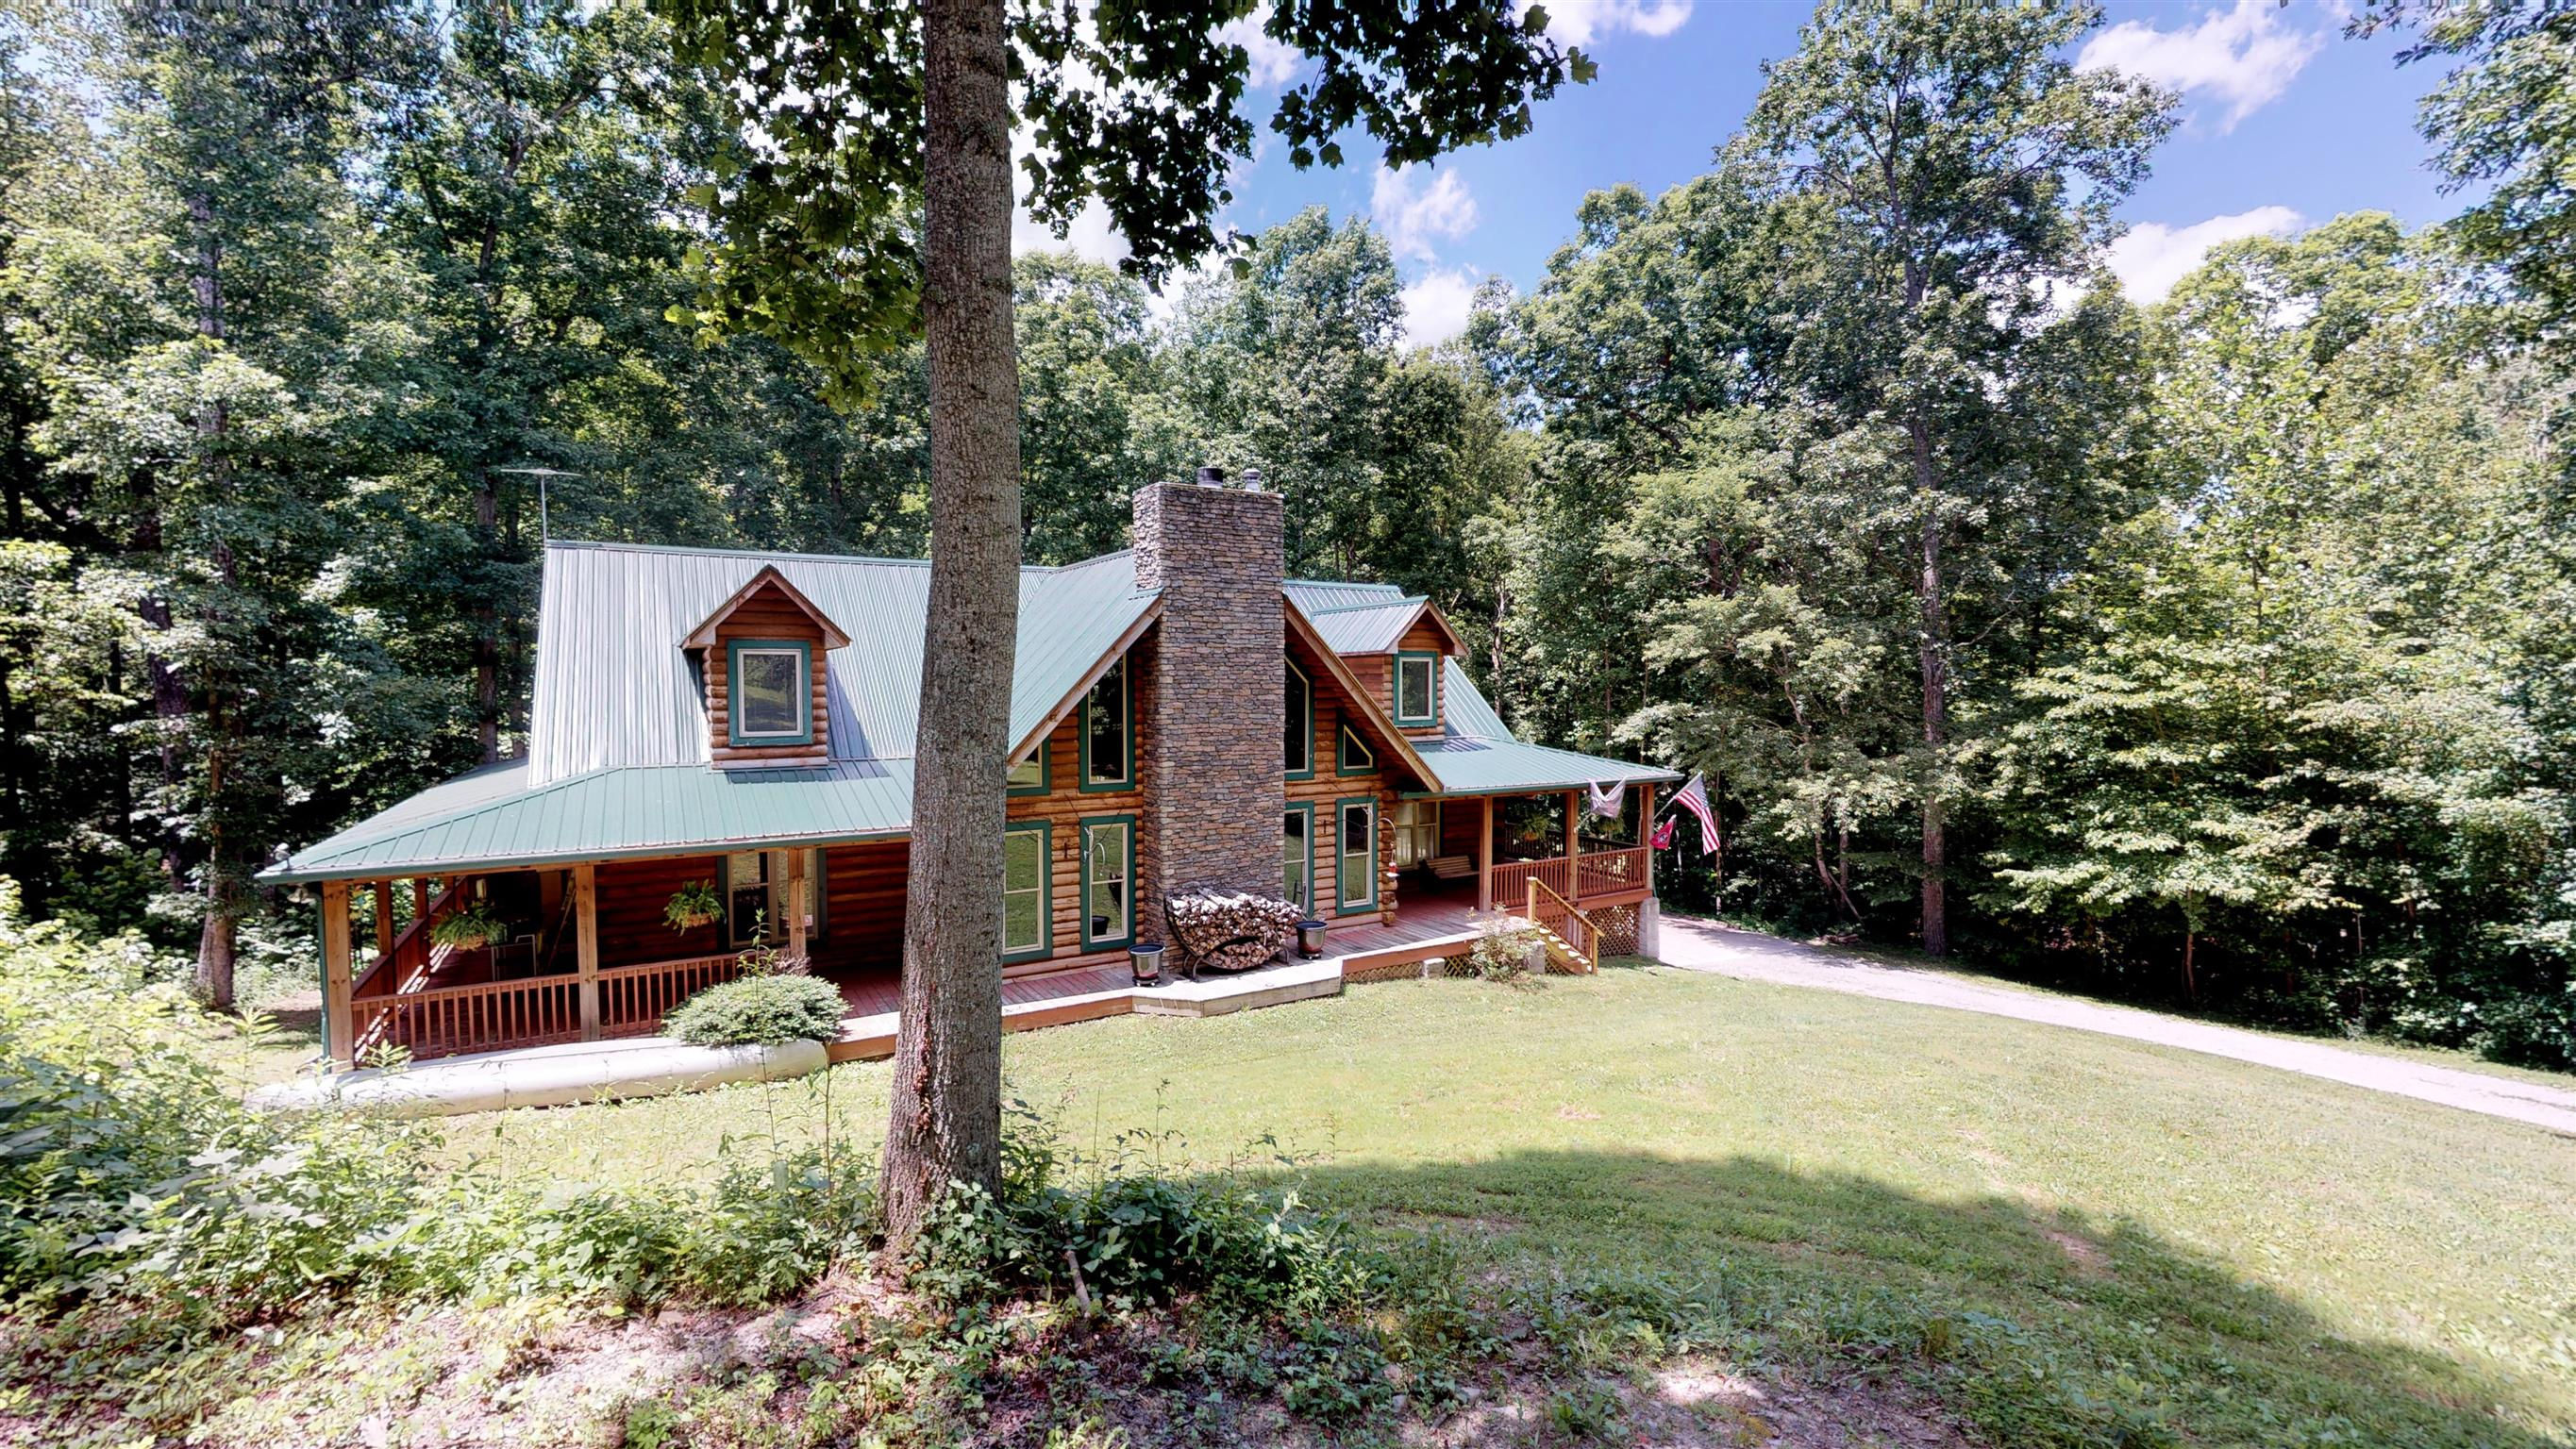 7117 Haskell School Rd, Fairview, Tennessee